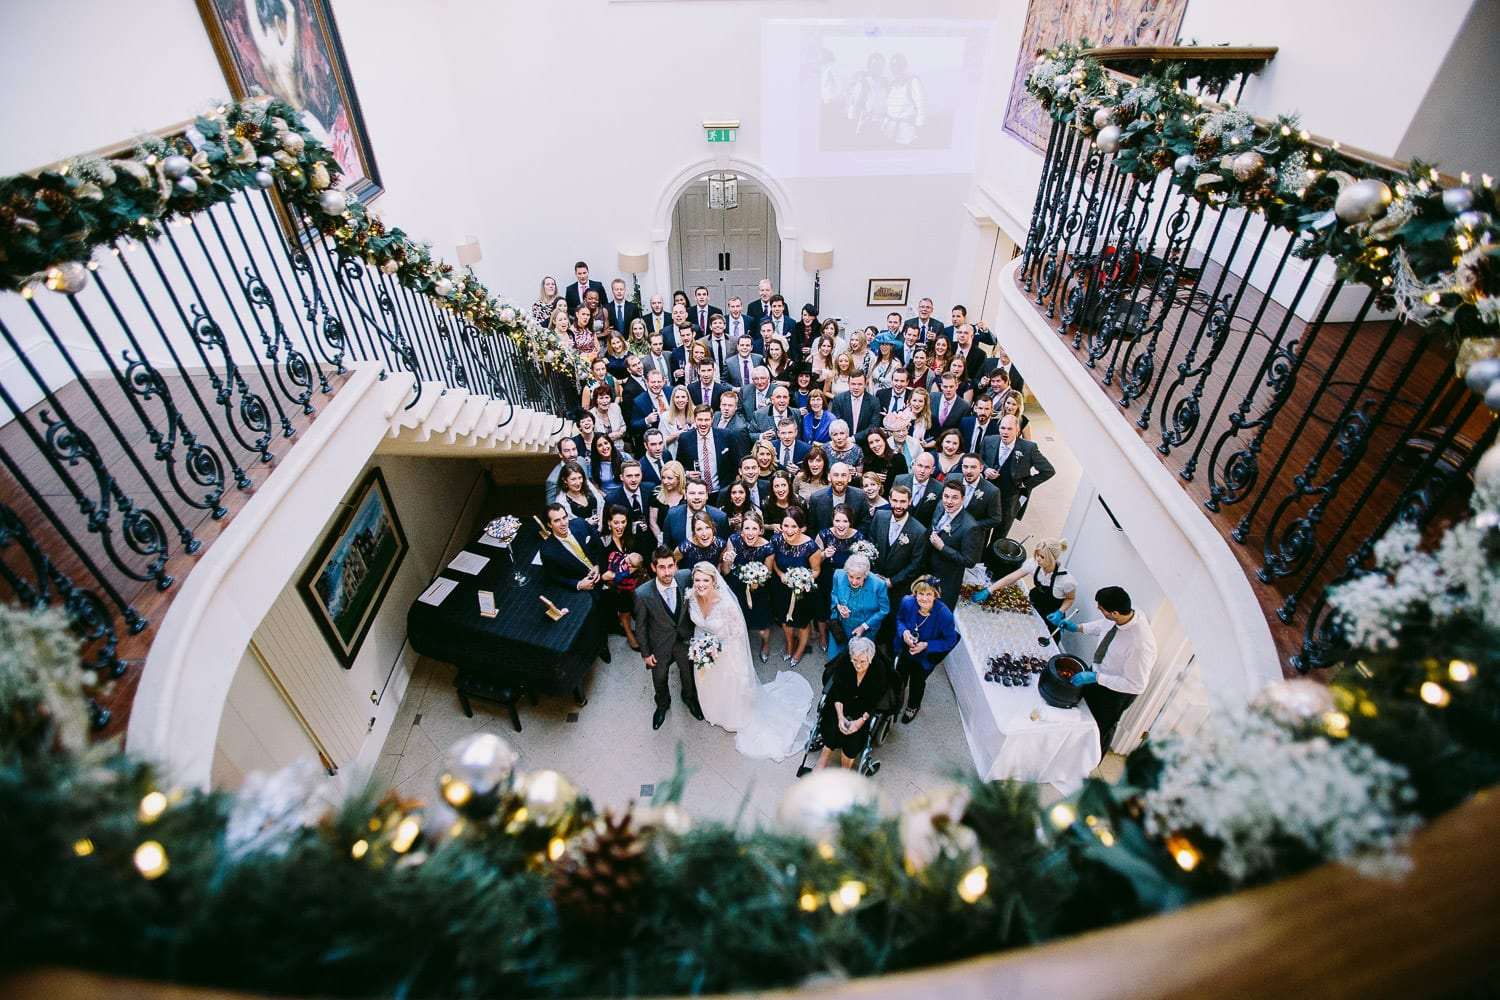 A group shot of all wedding guests shot from the balcony